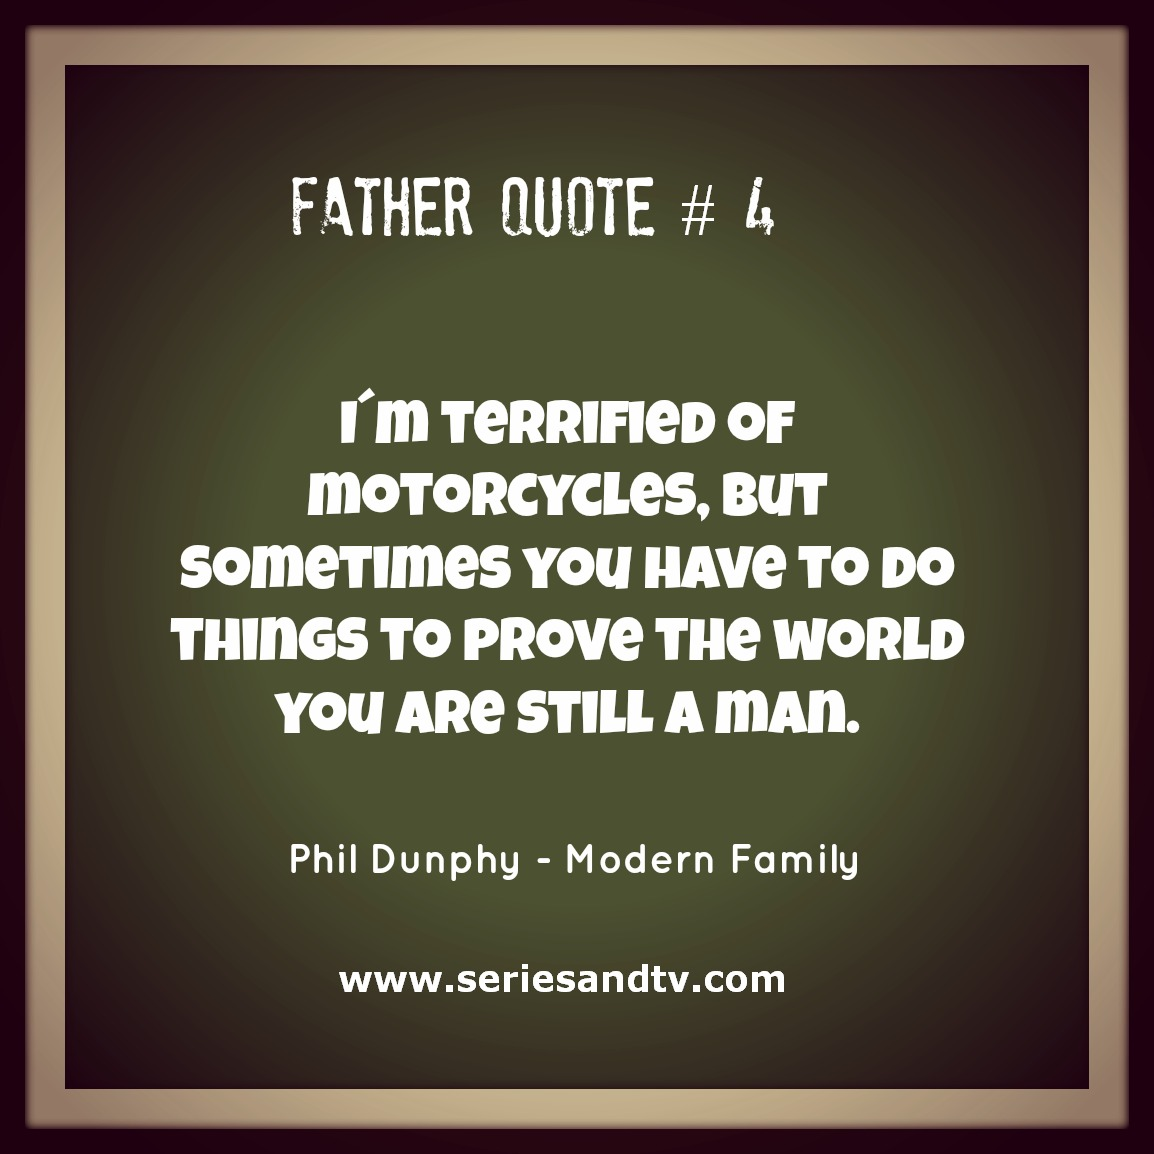 Famous Quotes About Family Famous Quotes About 'class Family'  Sualci Quotes